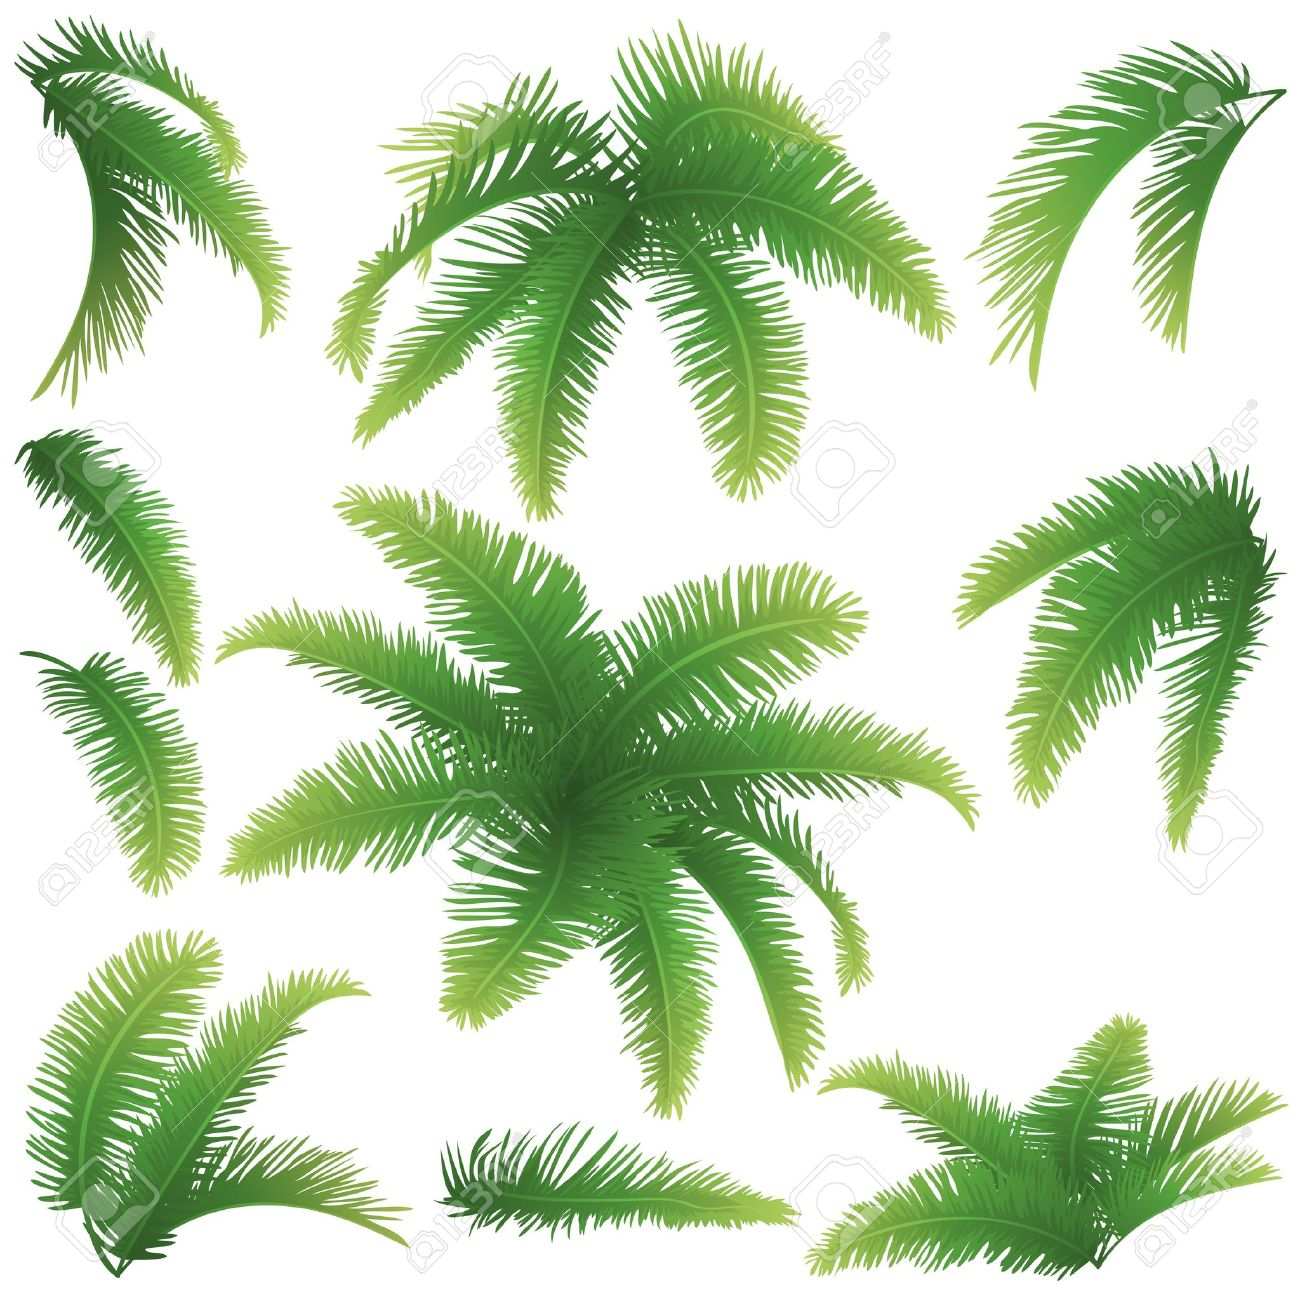 Set green branches with leaves of palm trees on a white background Drawn from life - 20190515